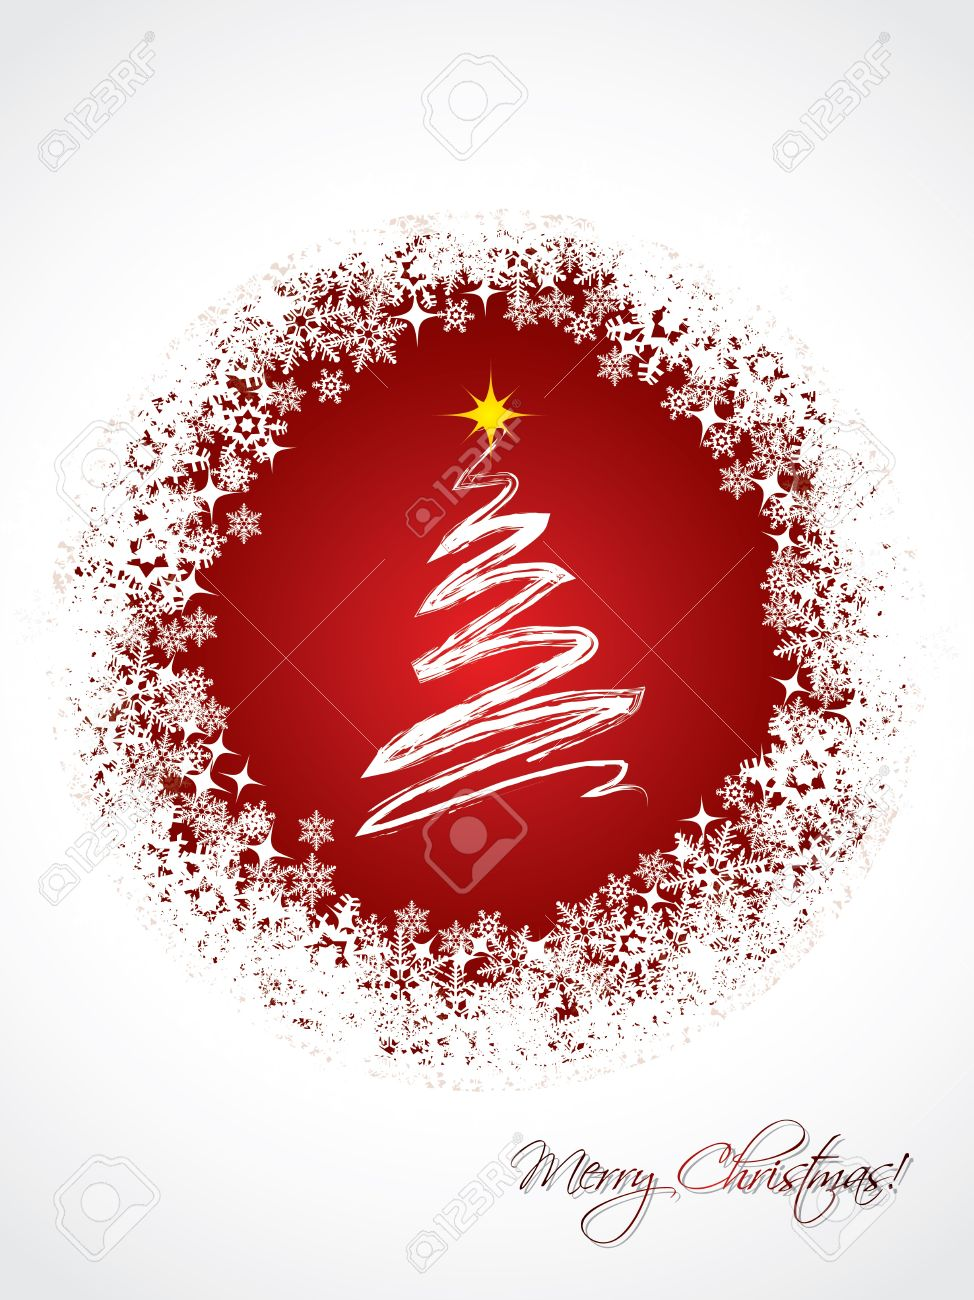 White Christmas Greeting Card Design With Red Color And White